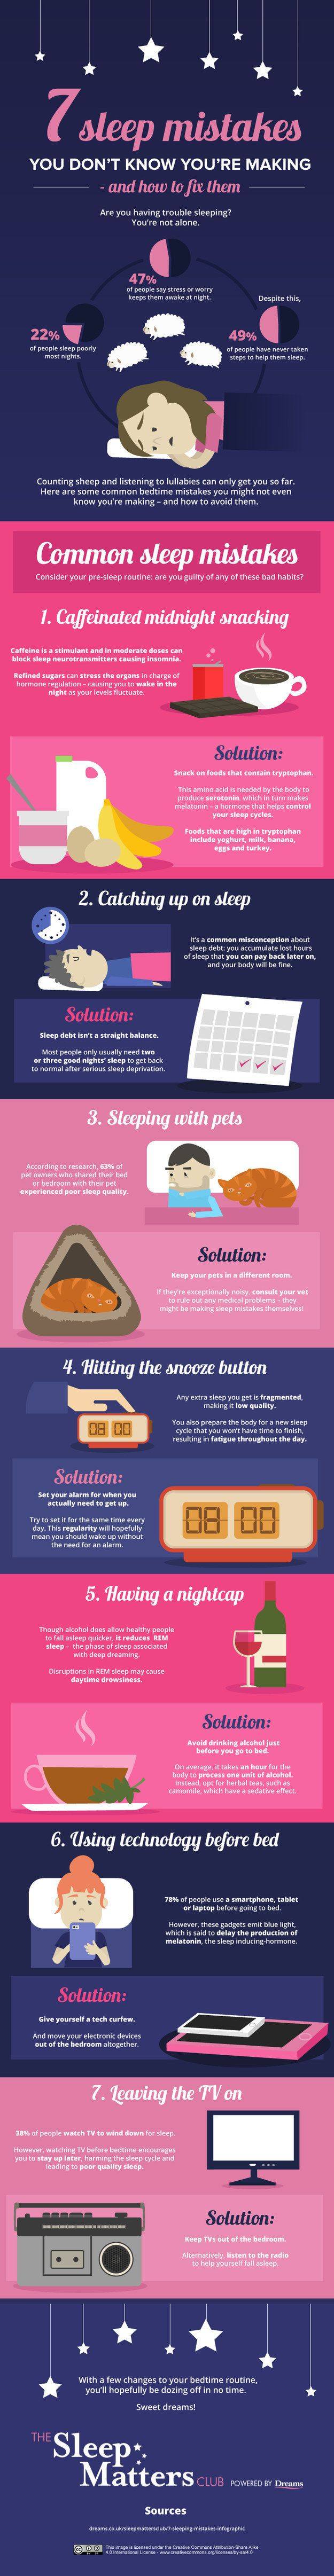 Make sure small things aren't sabotaging your sleep time.